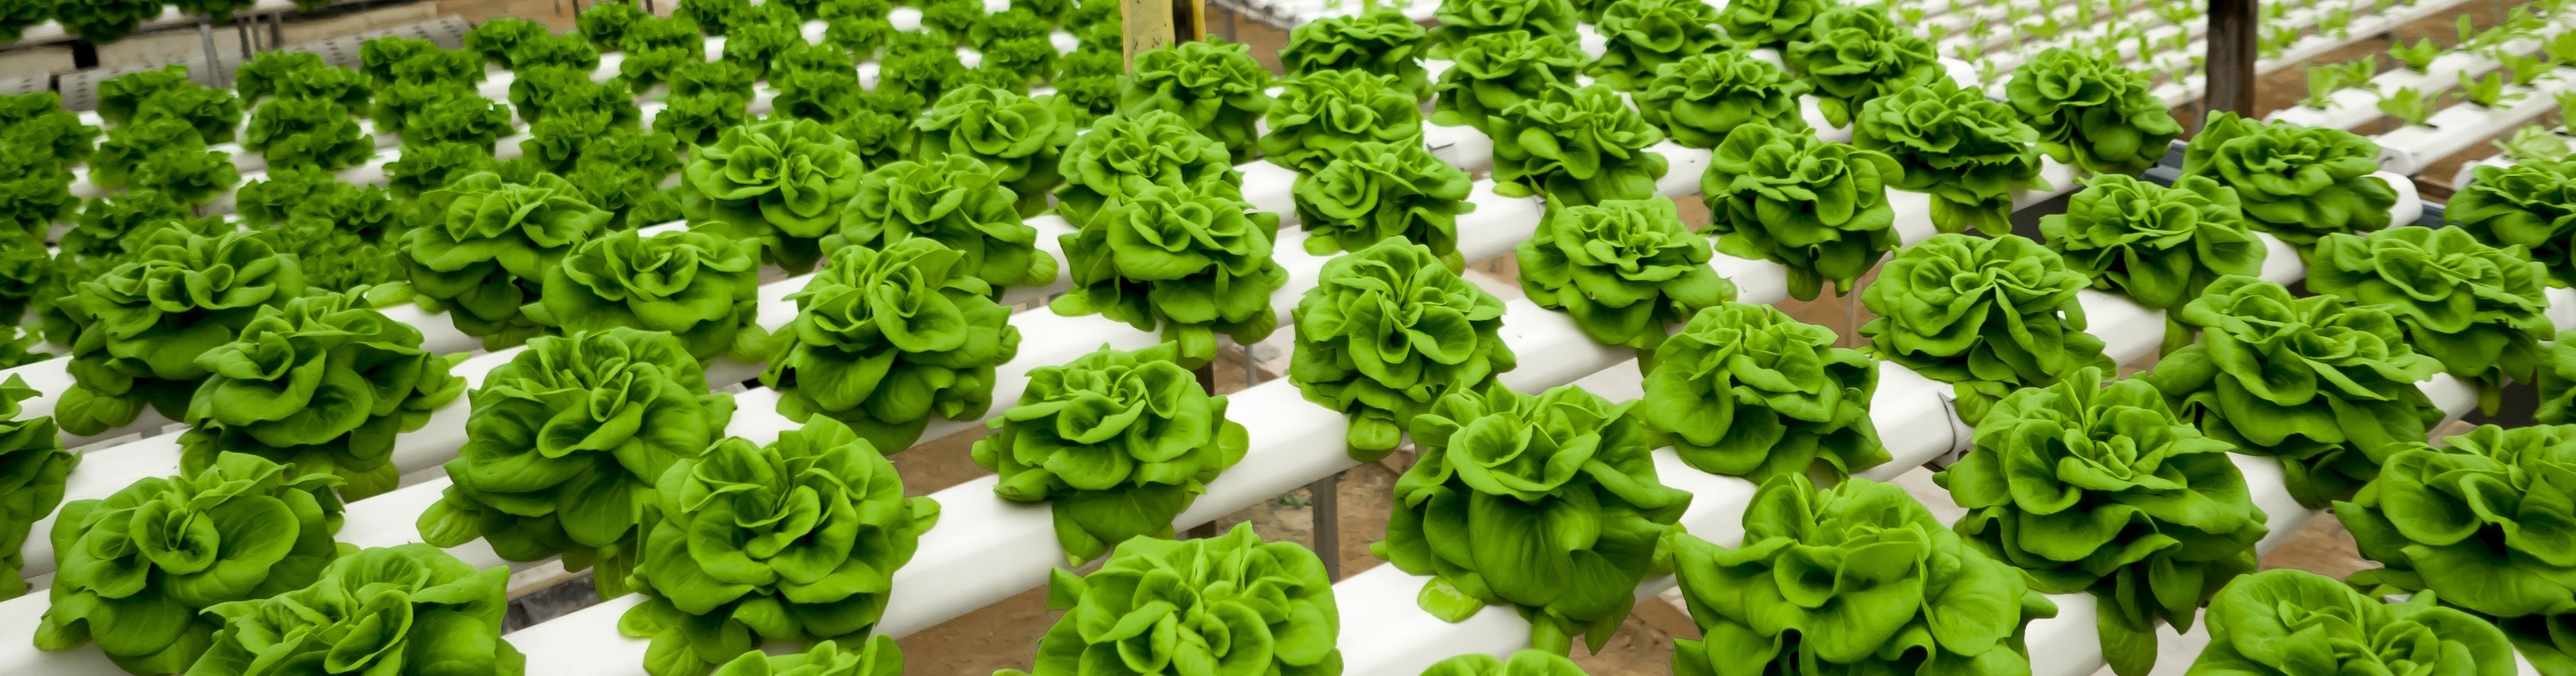 ability to garden in urban areas one of the greatest advantages of hydroponic gardening